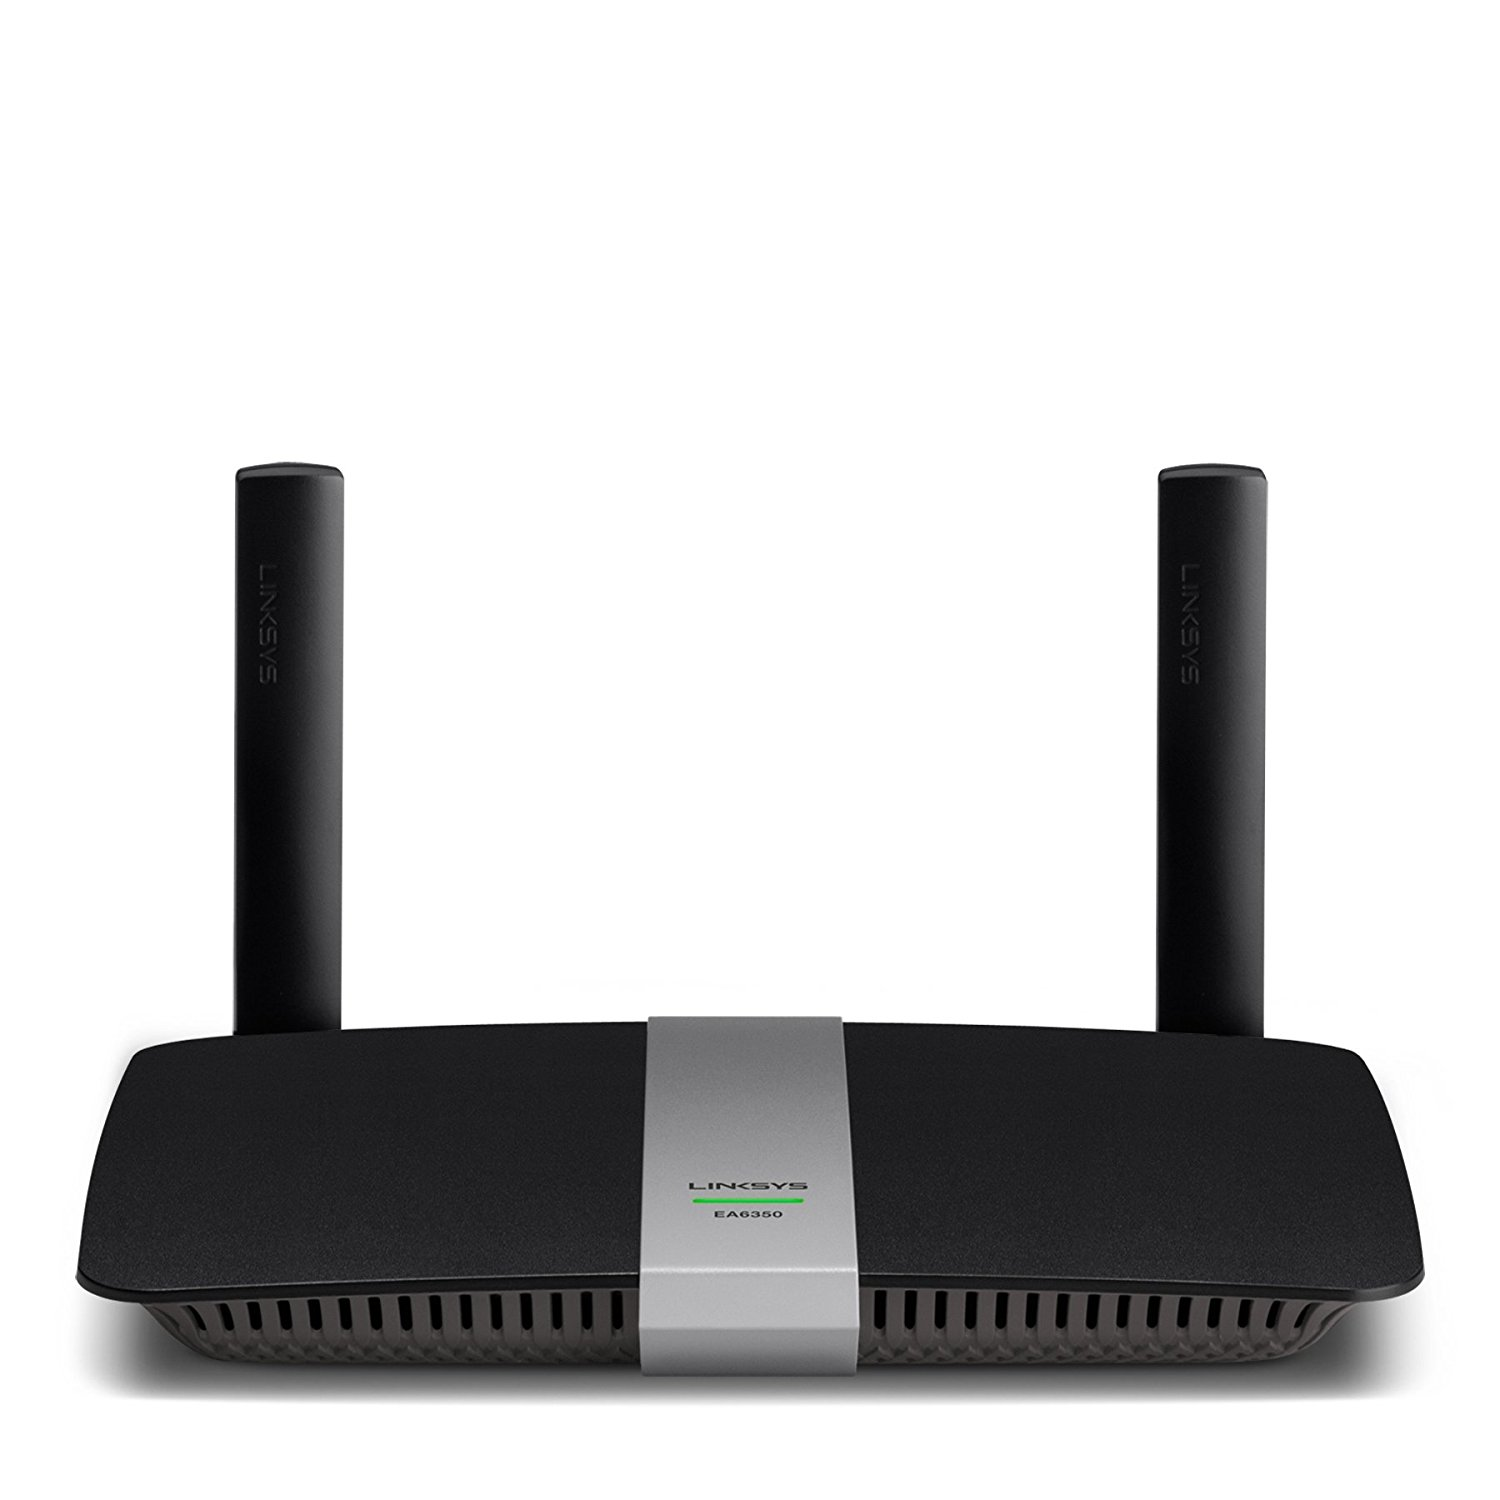 Linksys EA6350 Dual Band Gigabit Router